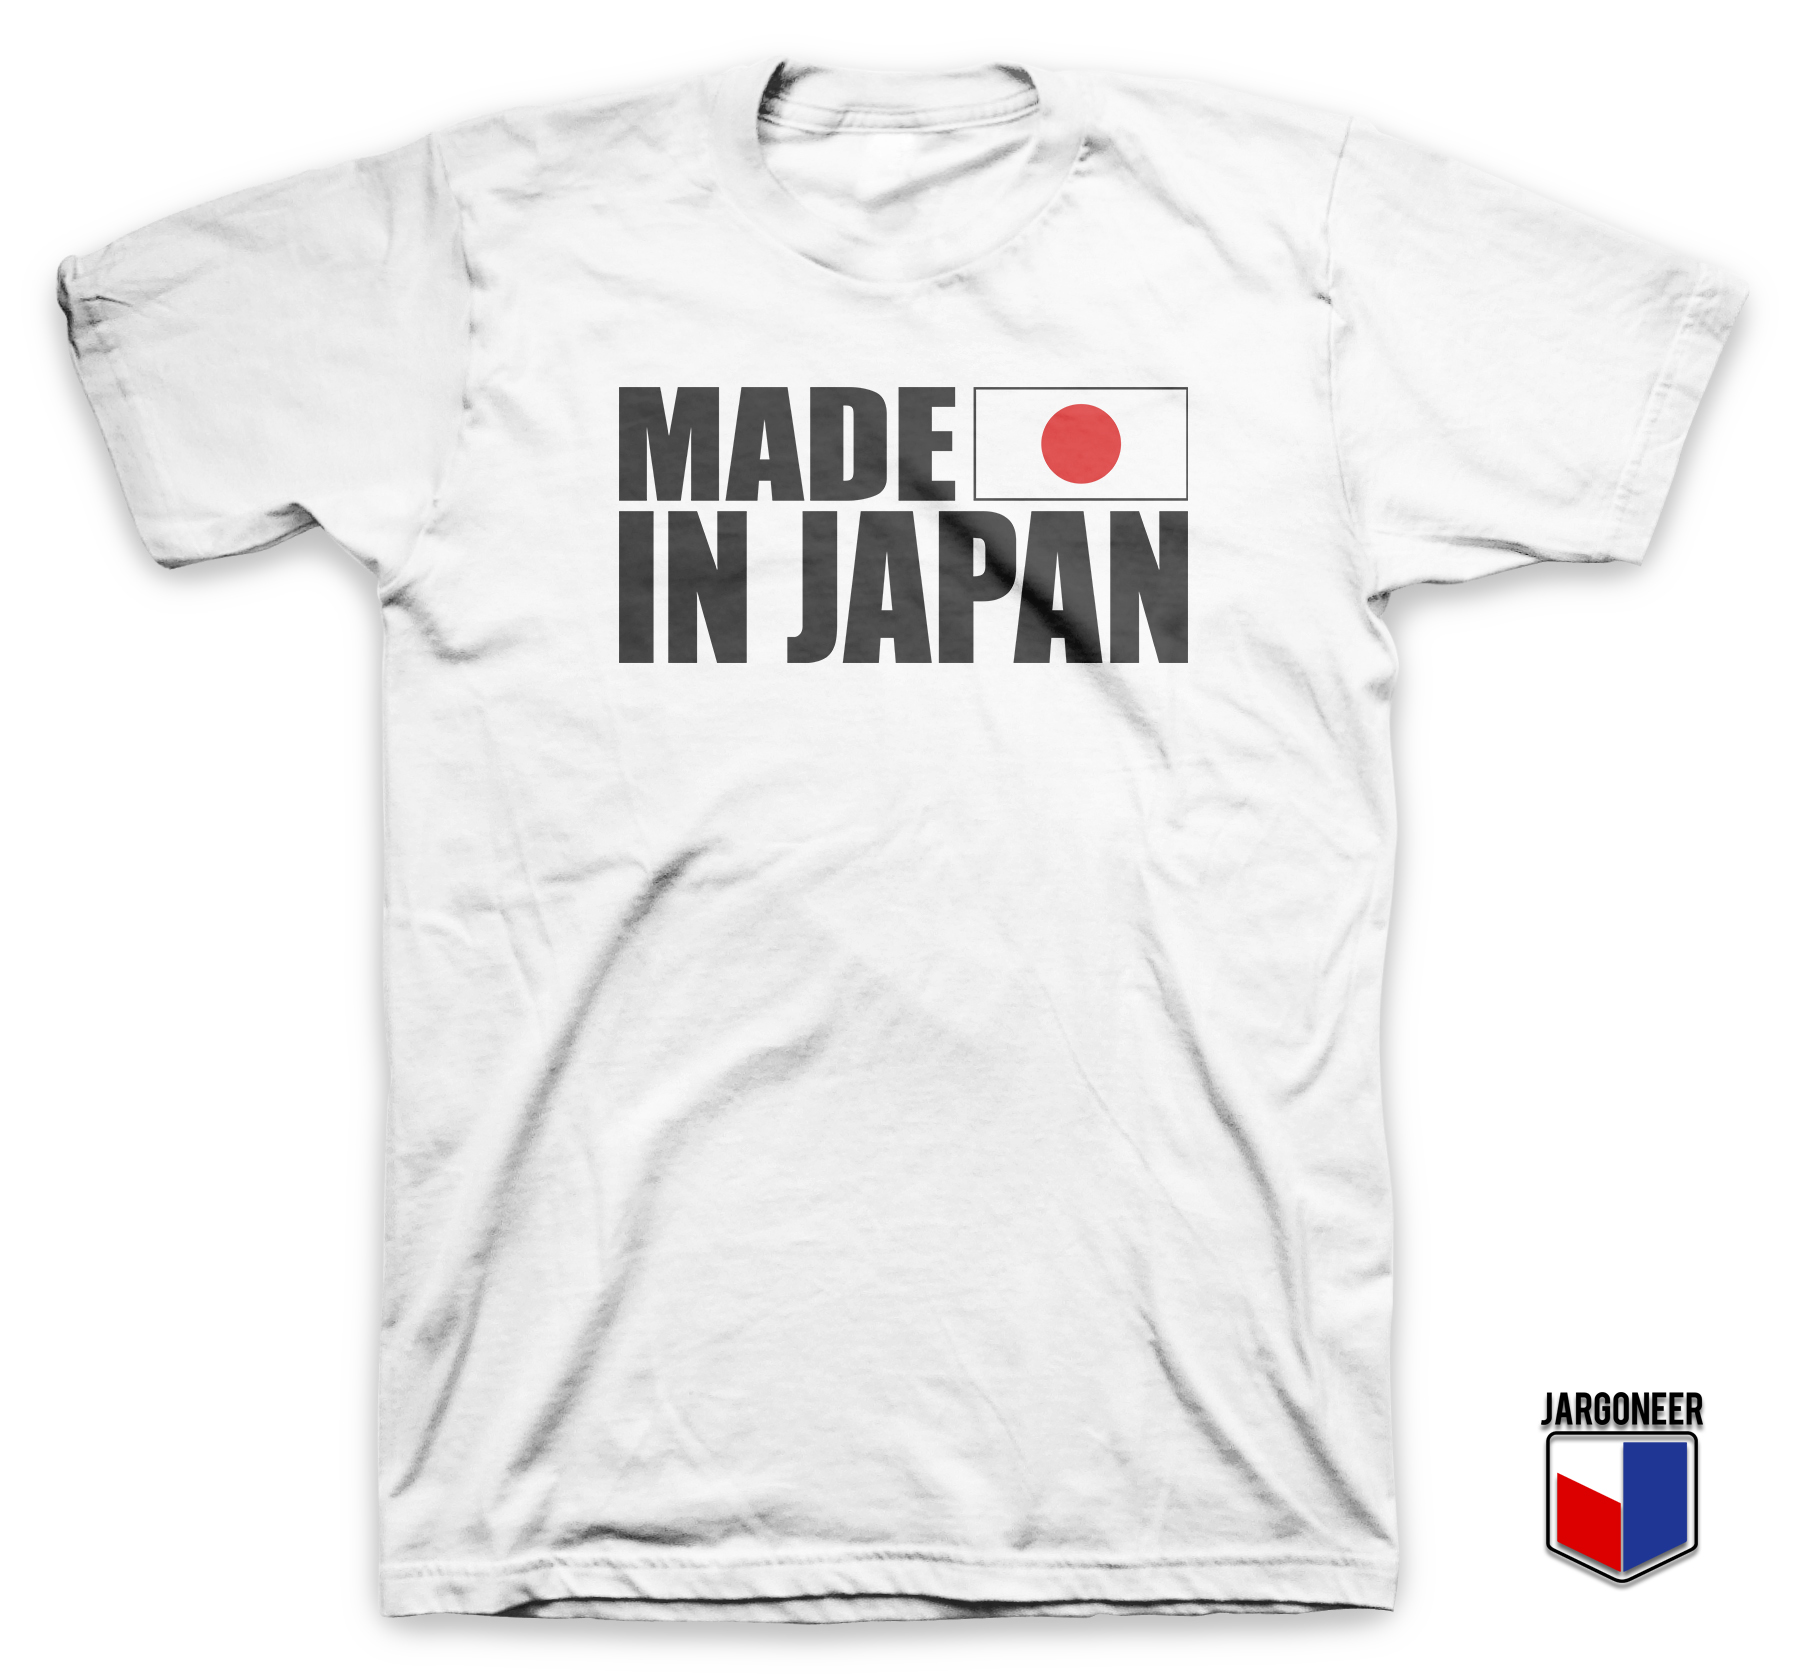 Made in japan with flag t shirt ideas t shirt cool for Made in t shirts